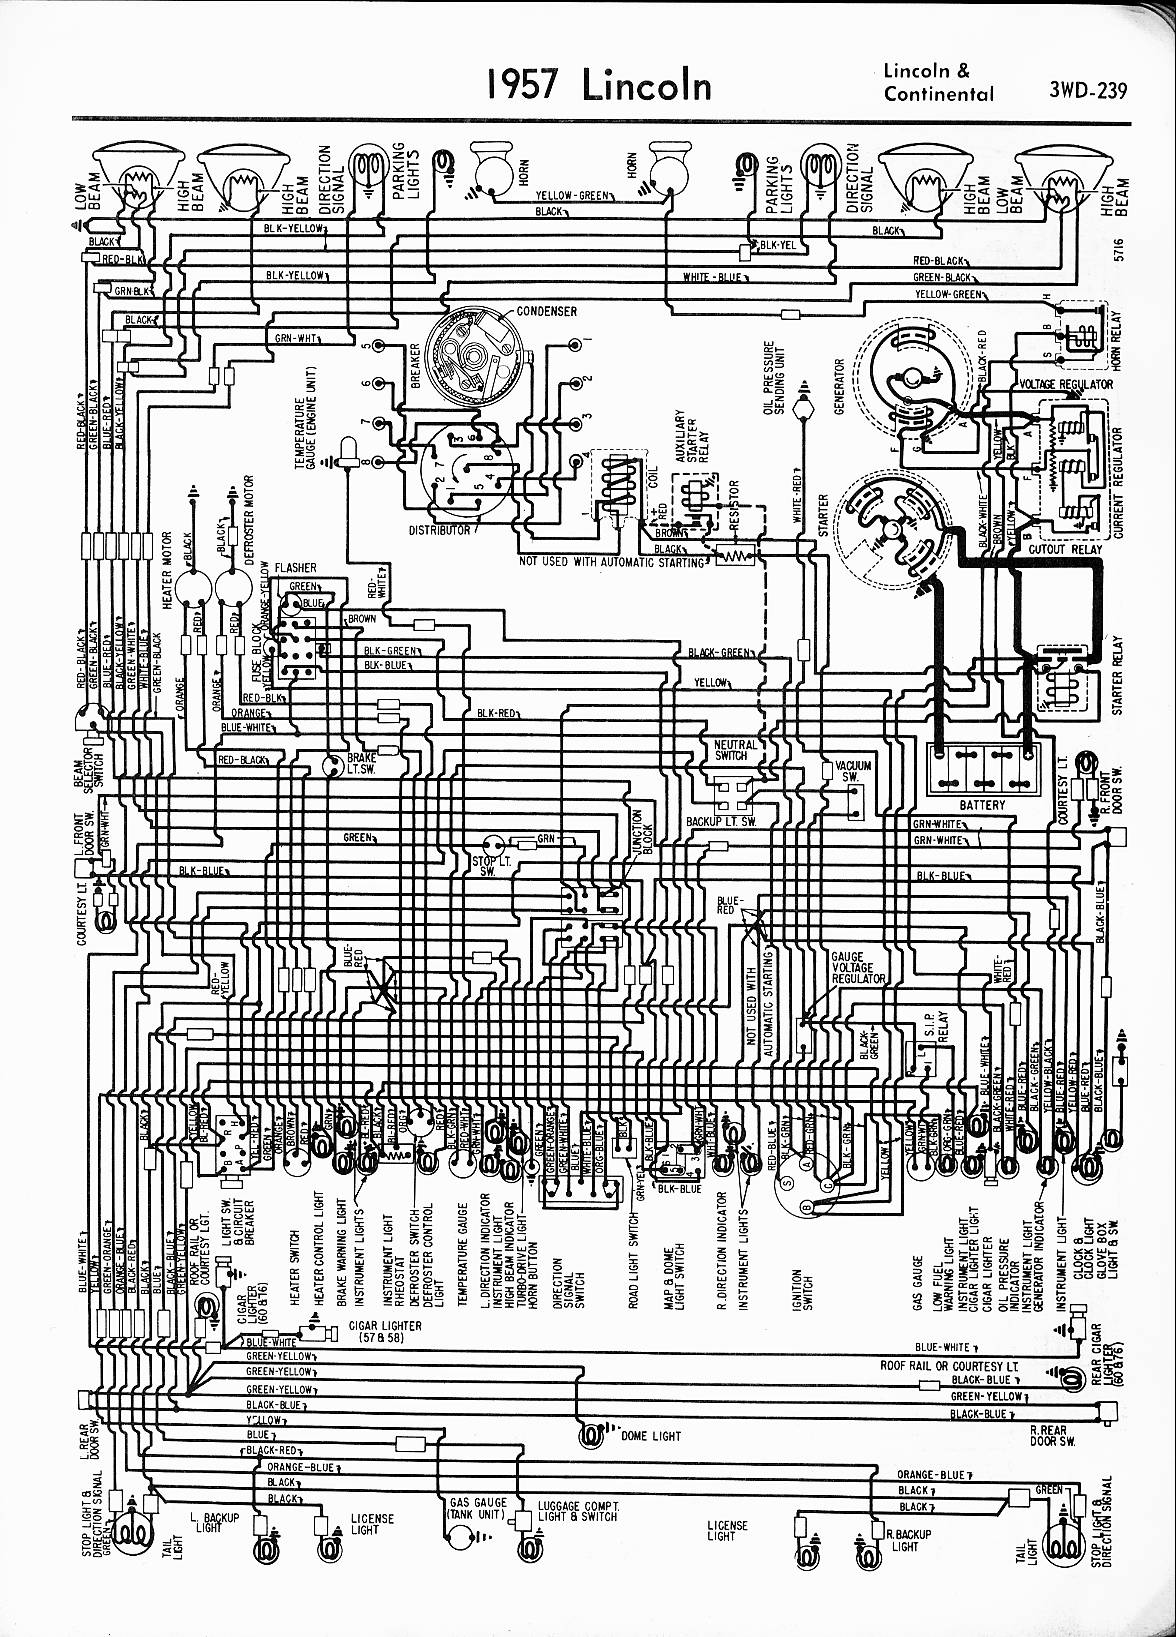 hight resolution of lincoln wiring diagrams 1957 19651957 lincoln u0026 continental